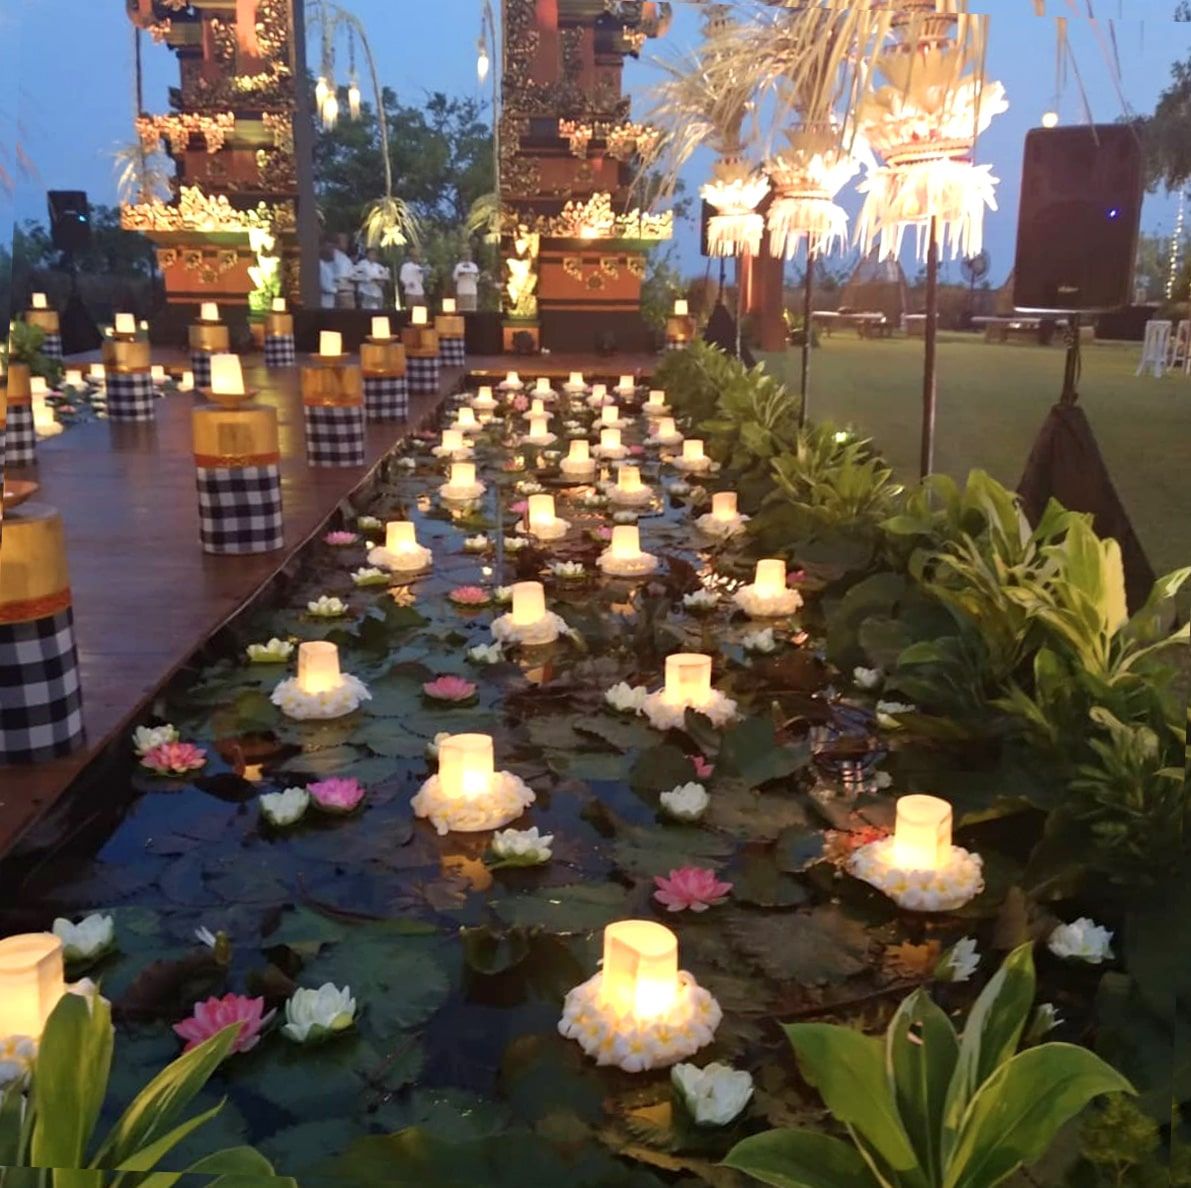 Frangipani Flower Religious meaning in bali